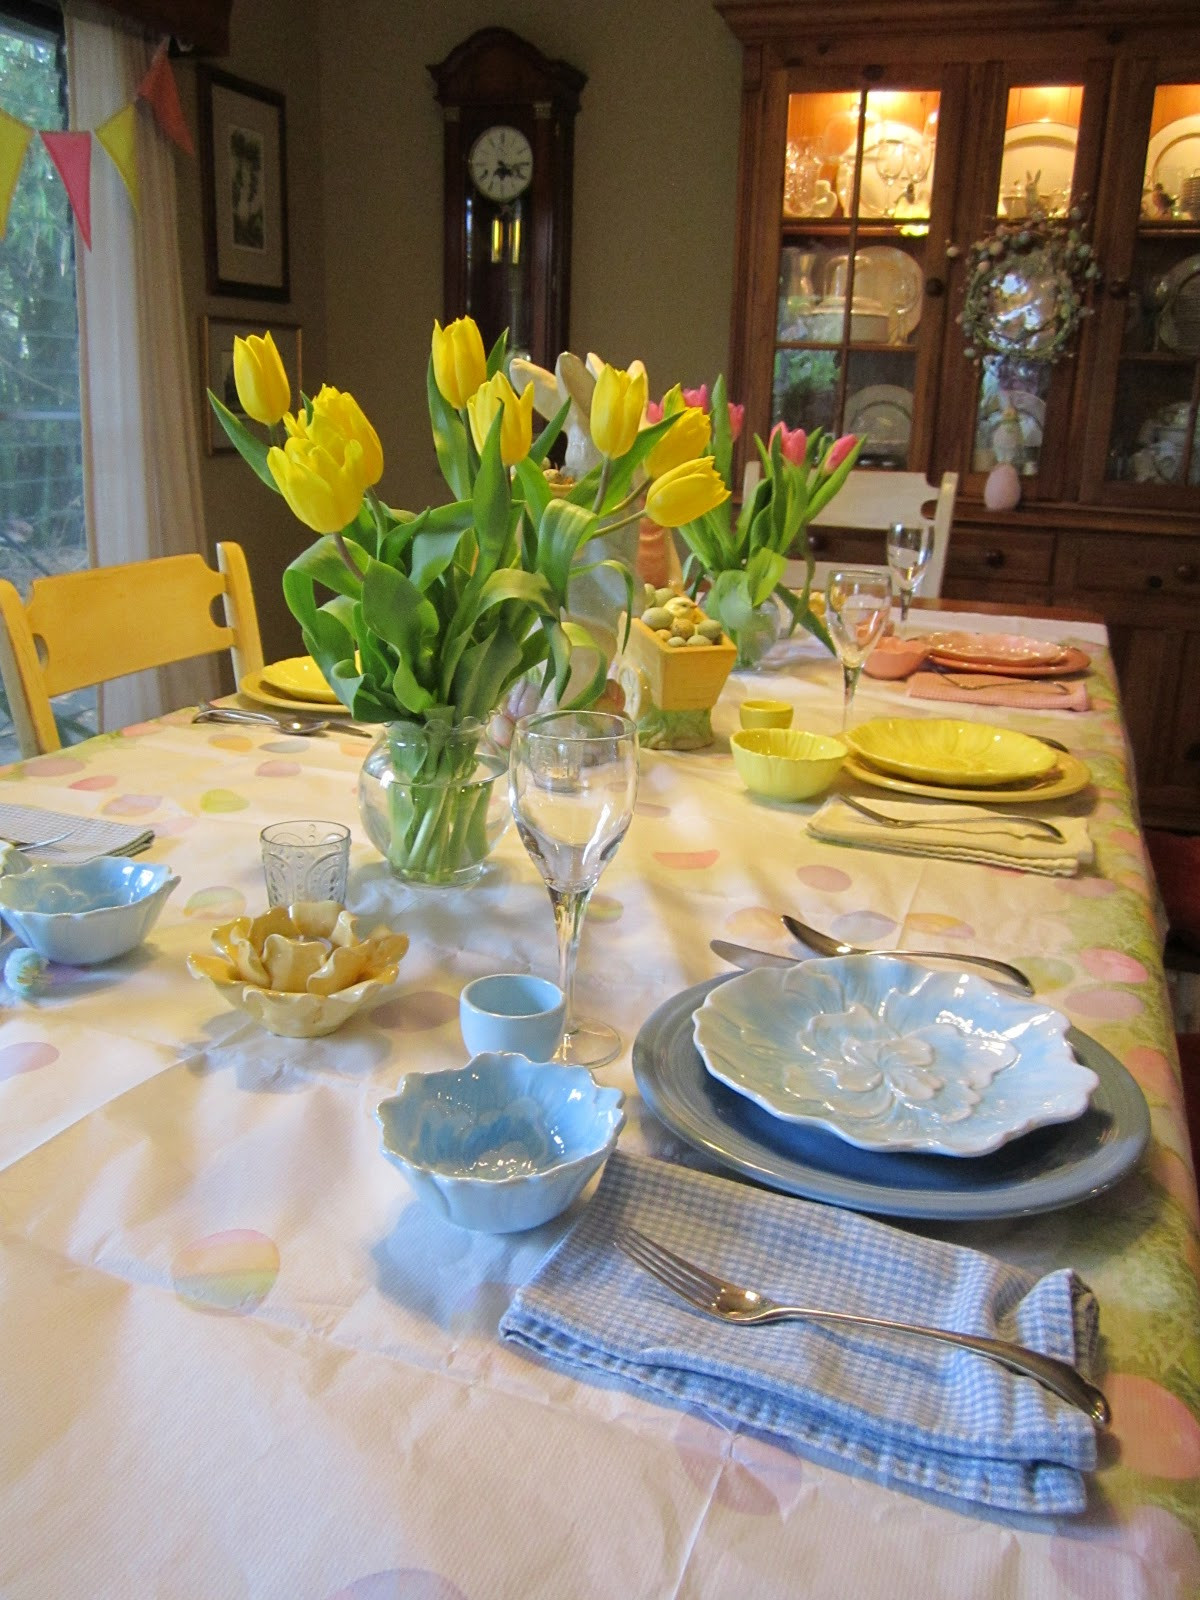 Safeway Easter Dinner  Val the Crafty Gal Easter Tulips Table and Treats